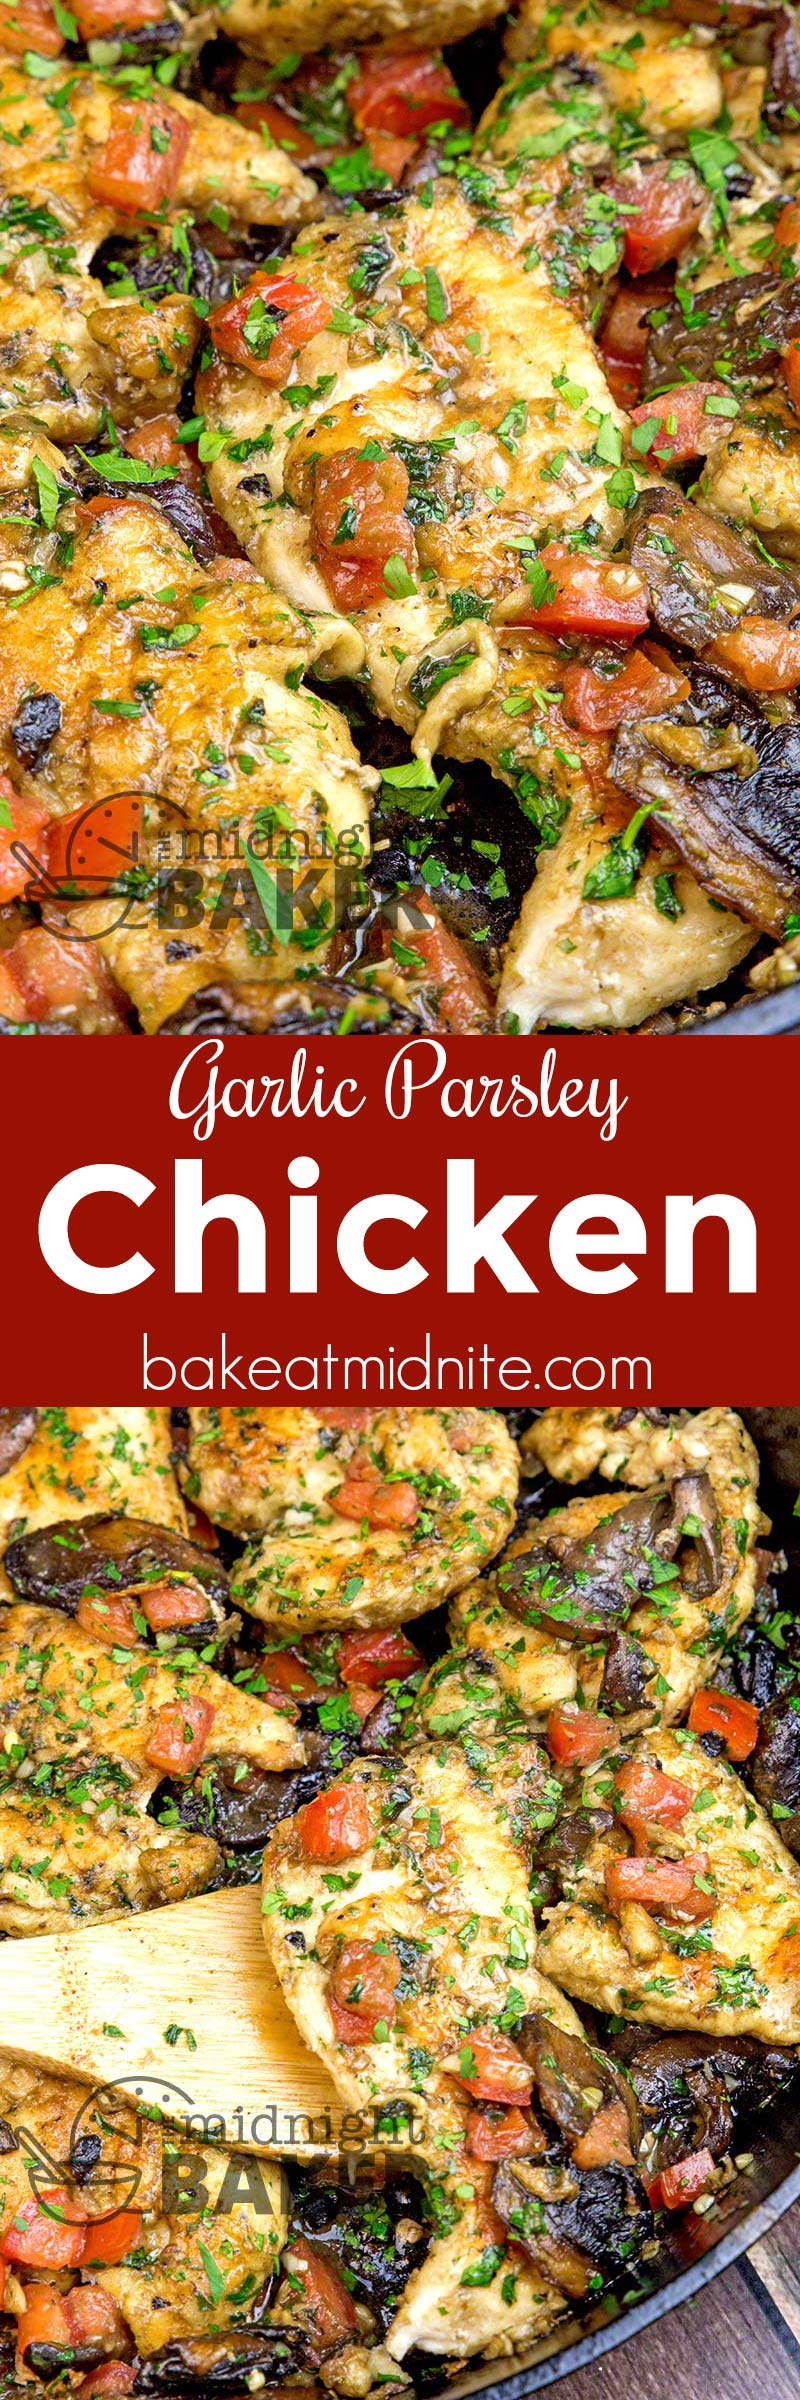 Quick and easy skillet chicken dinner thats oh-so grlicky